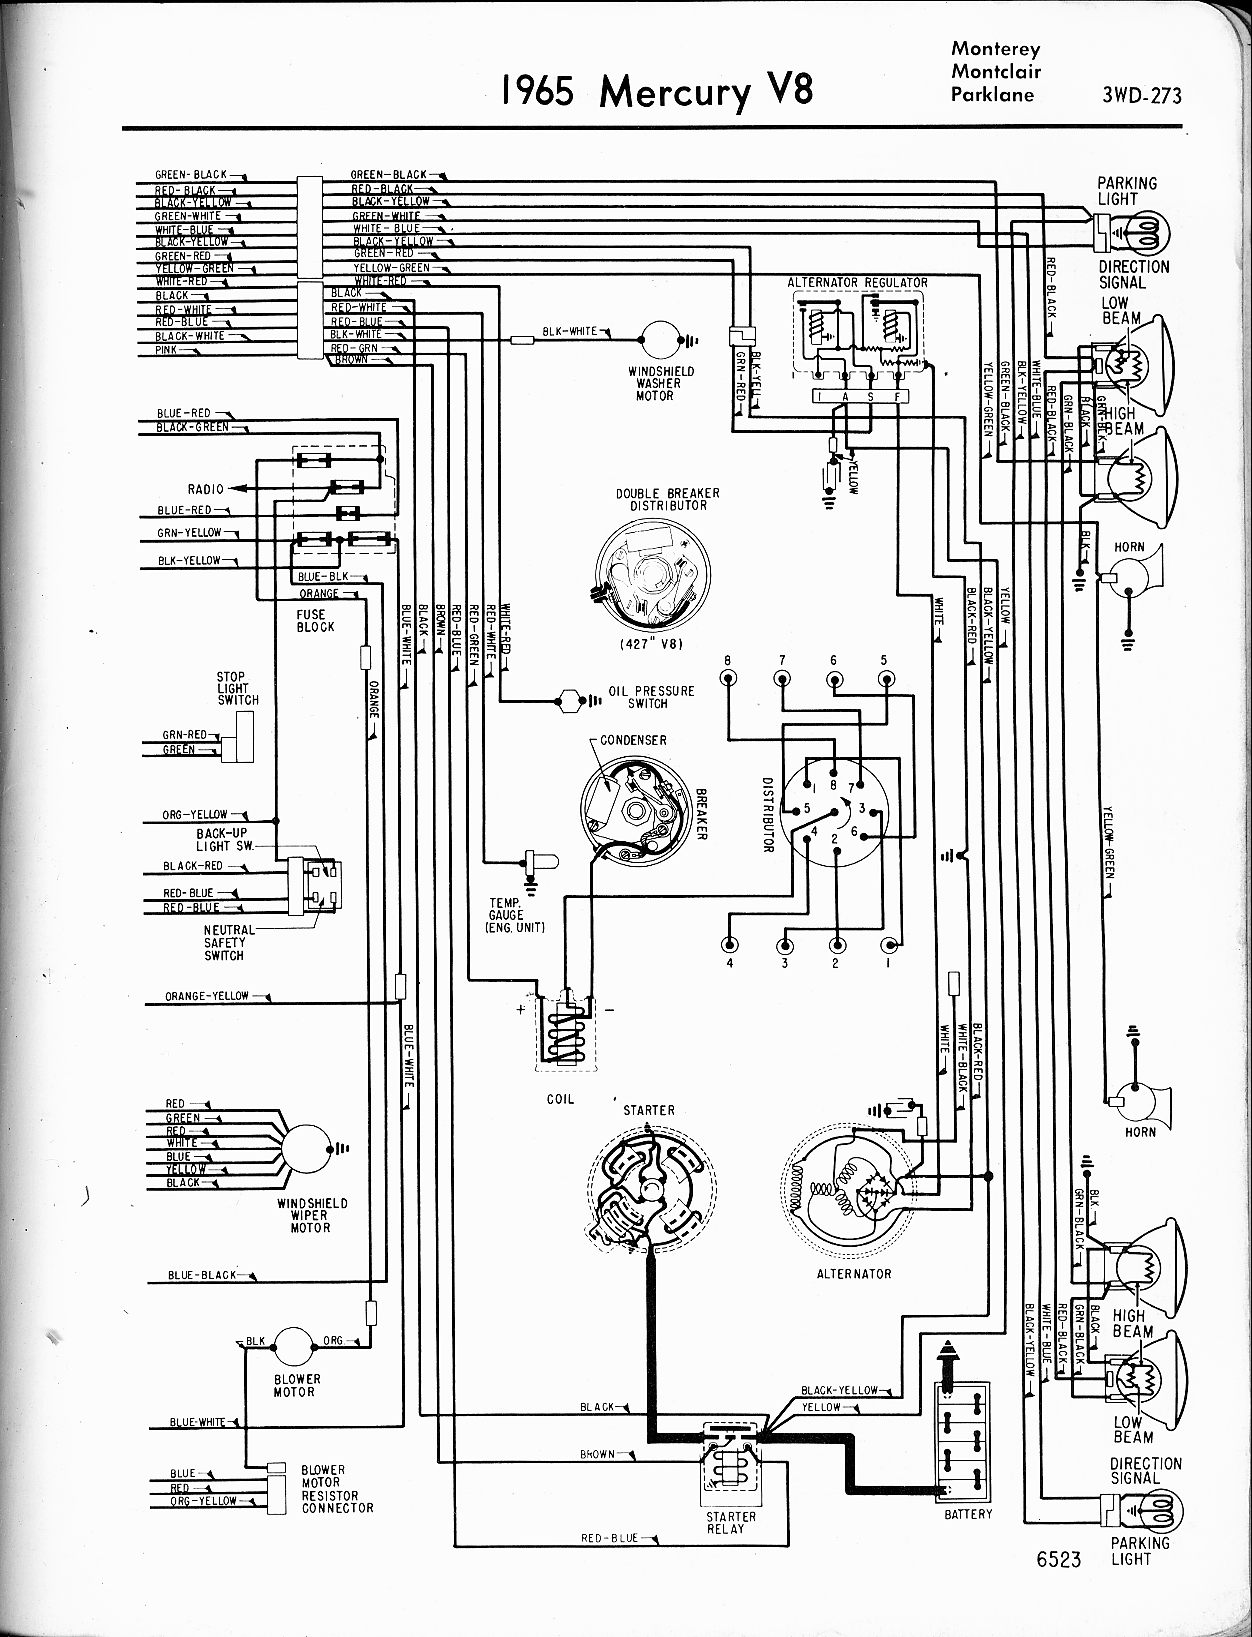 1984 Chevy C10 Temperature Gauge Wiring Diagram 47 72 Truck Headlight Mwire5765 273 Schematic For 1967 Chevrolet Pickup